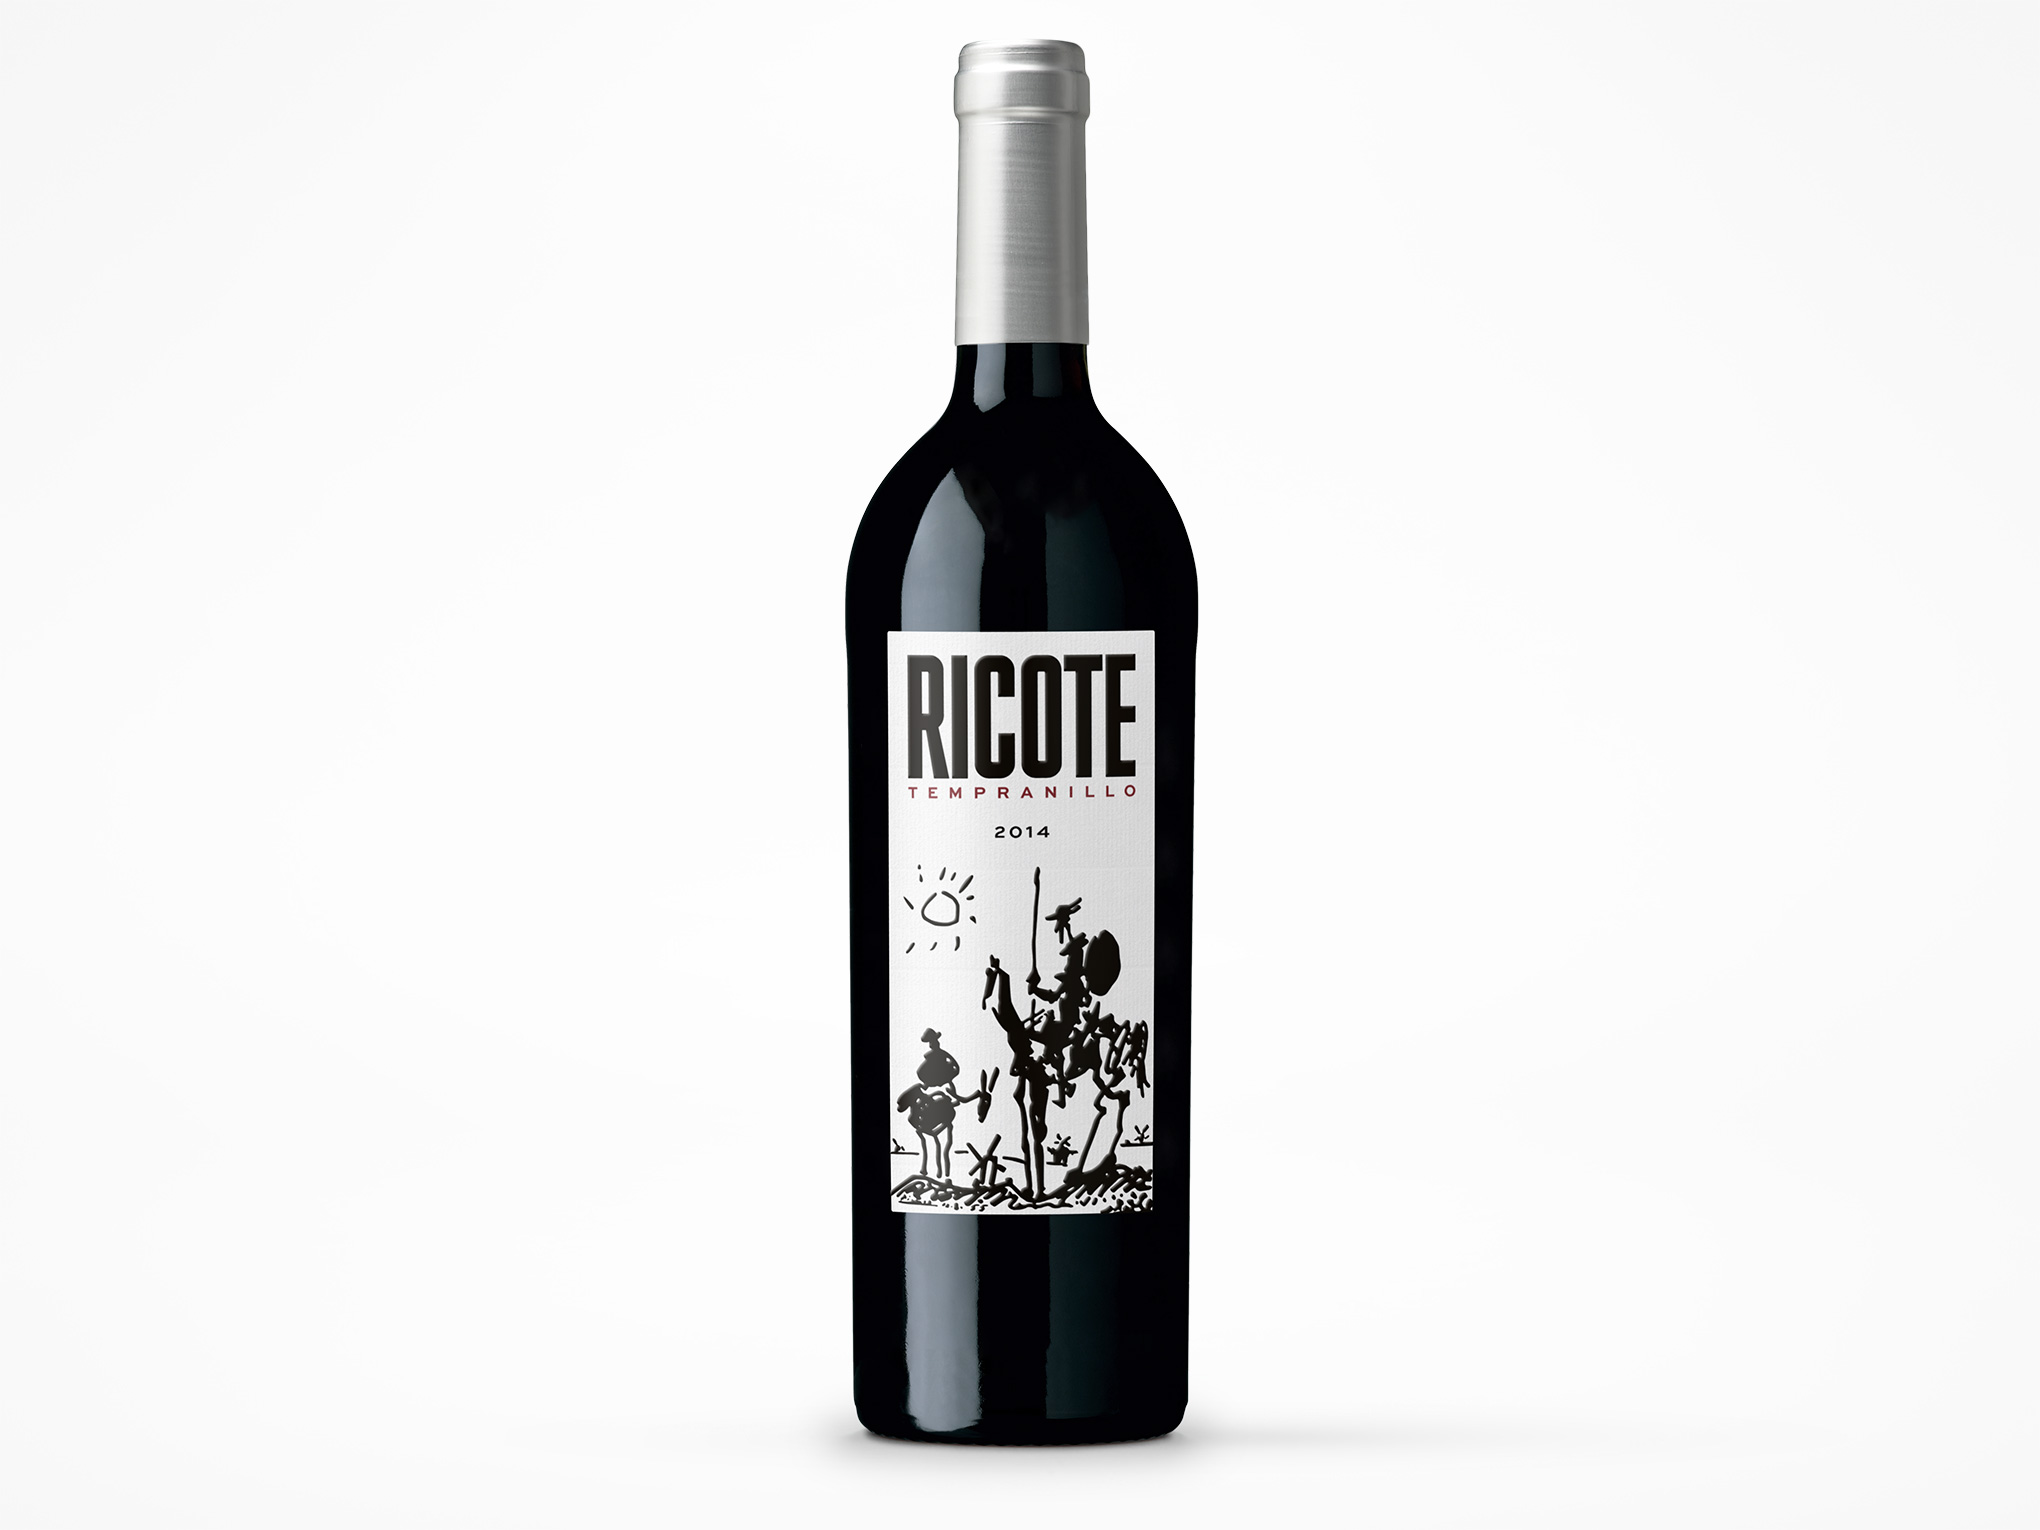 Ricote Tempranillo Wine Label Design Bottleshot Grape Collective